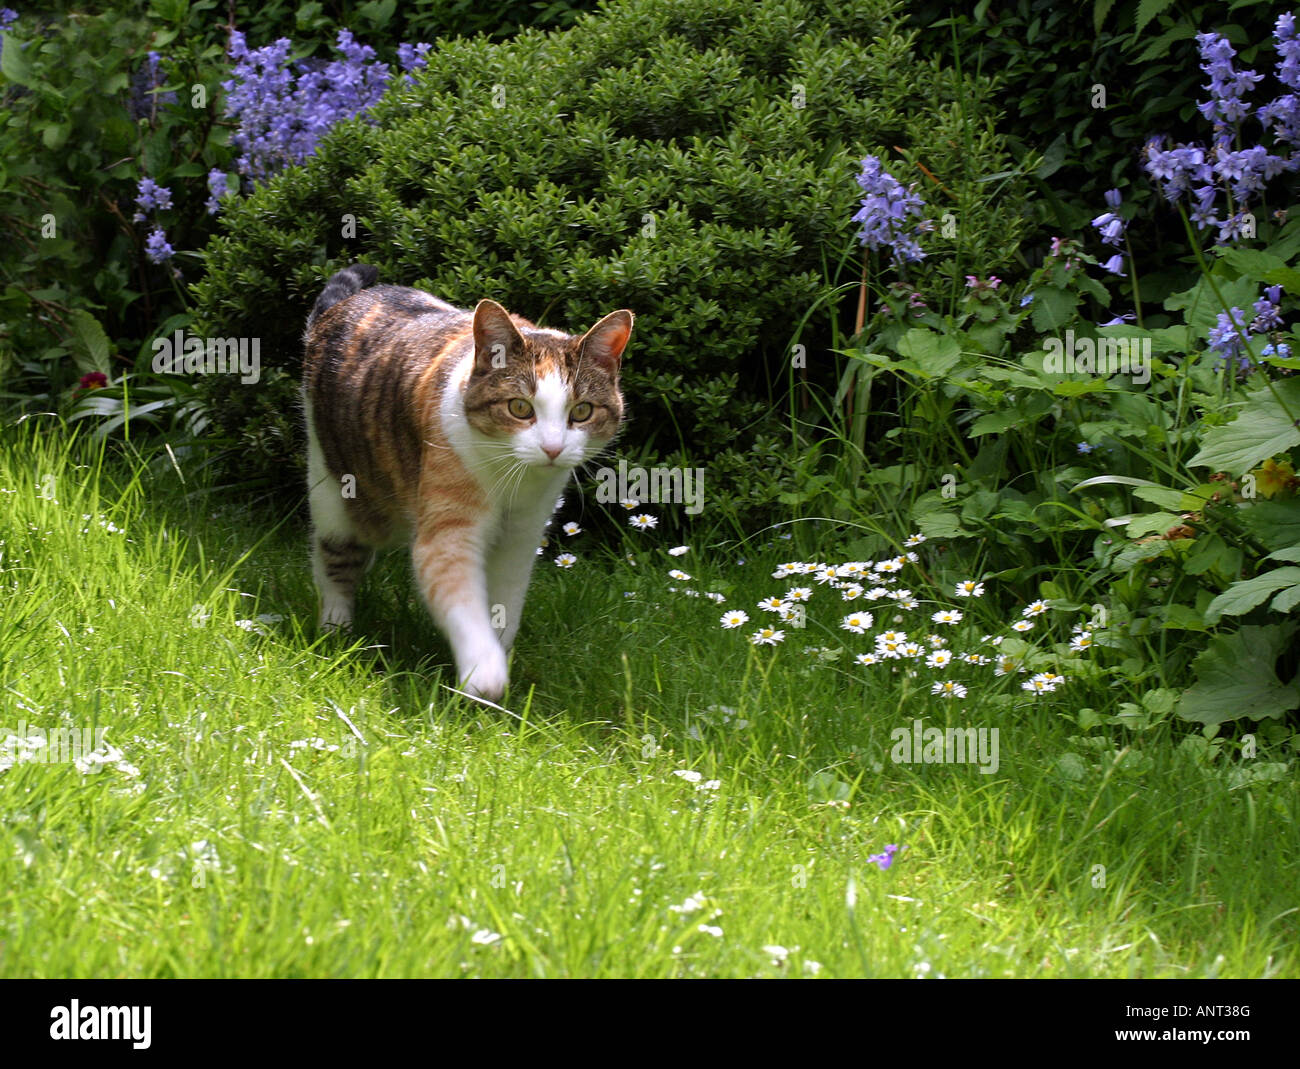 domestic-cat-in-a-garden-suffolk-uk-ANT3